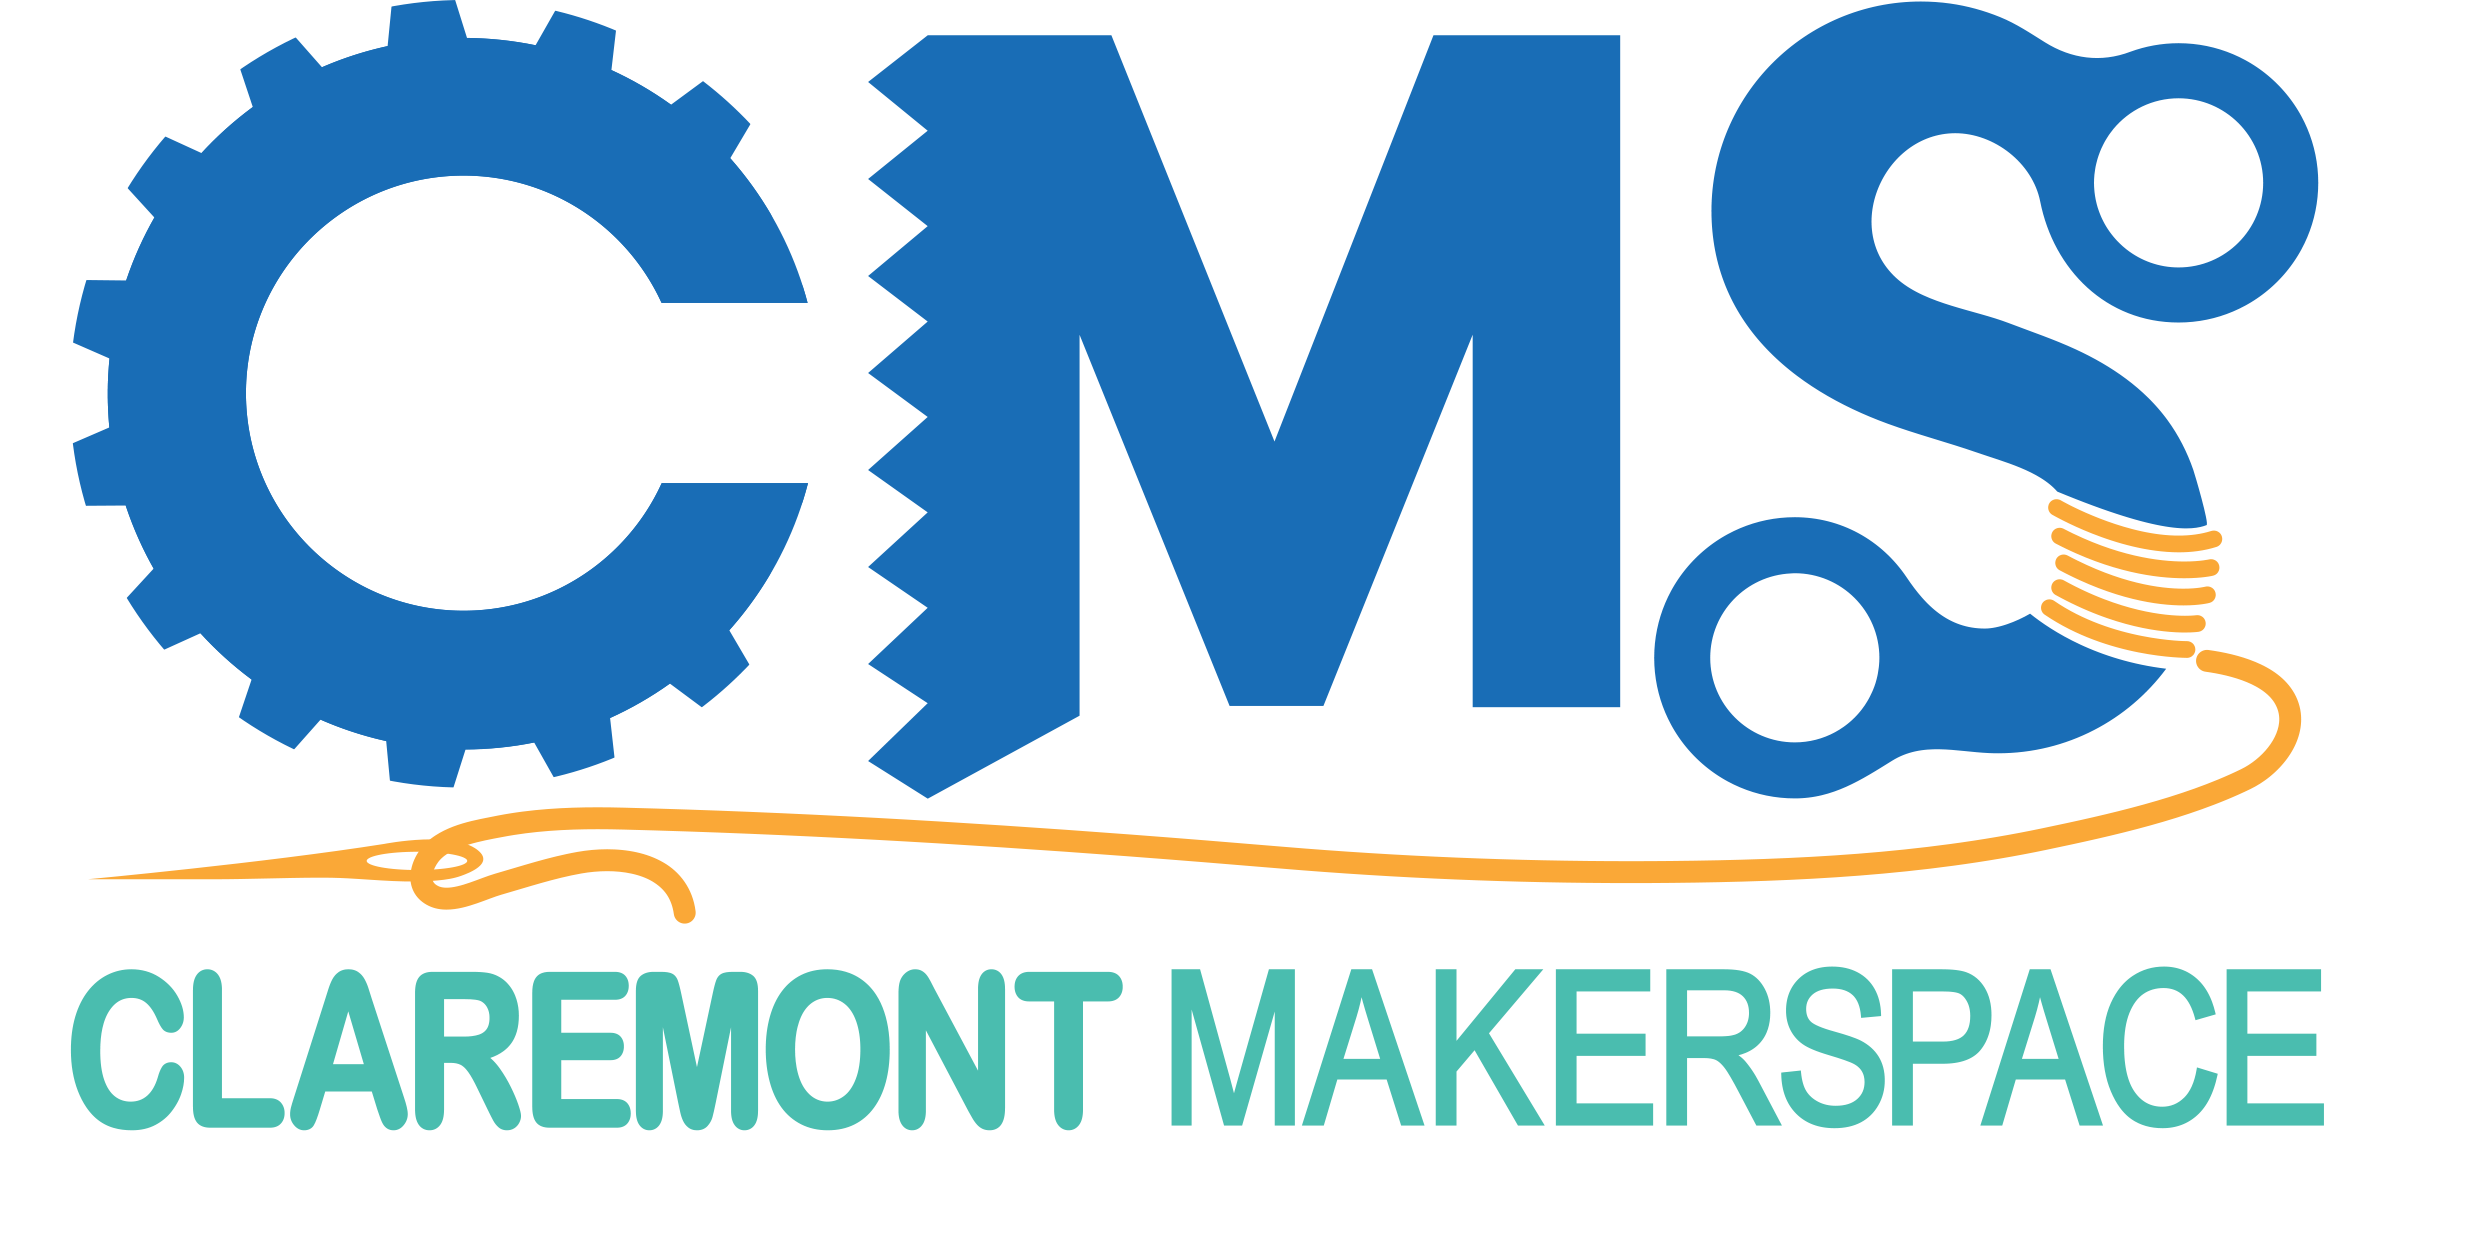 The Claremont MakerSpace